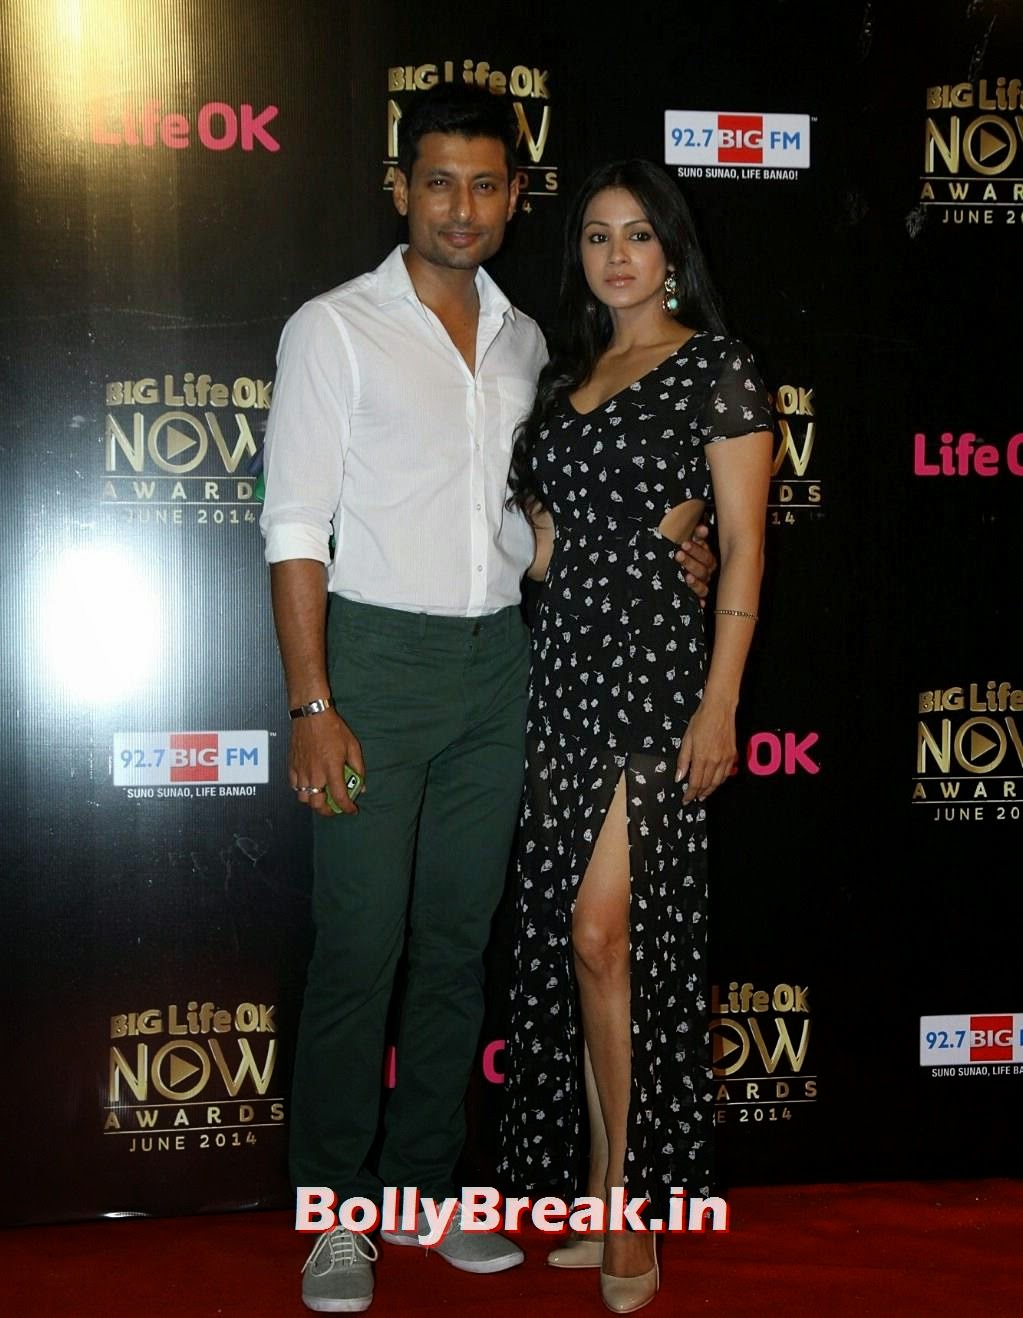 Barkha Bisht  in leg cutting dress at Life Ok Now Awards 2014, Barkha Bisht Latest Hot HD Pics from Life Ok Now Awards 2014